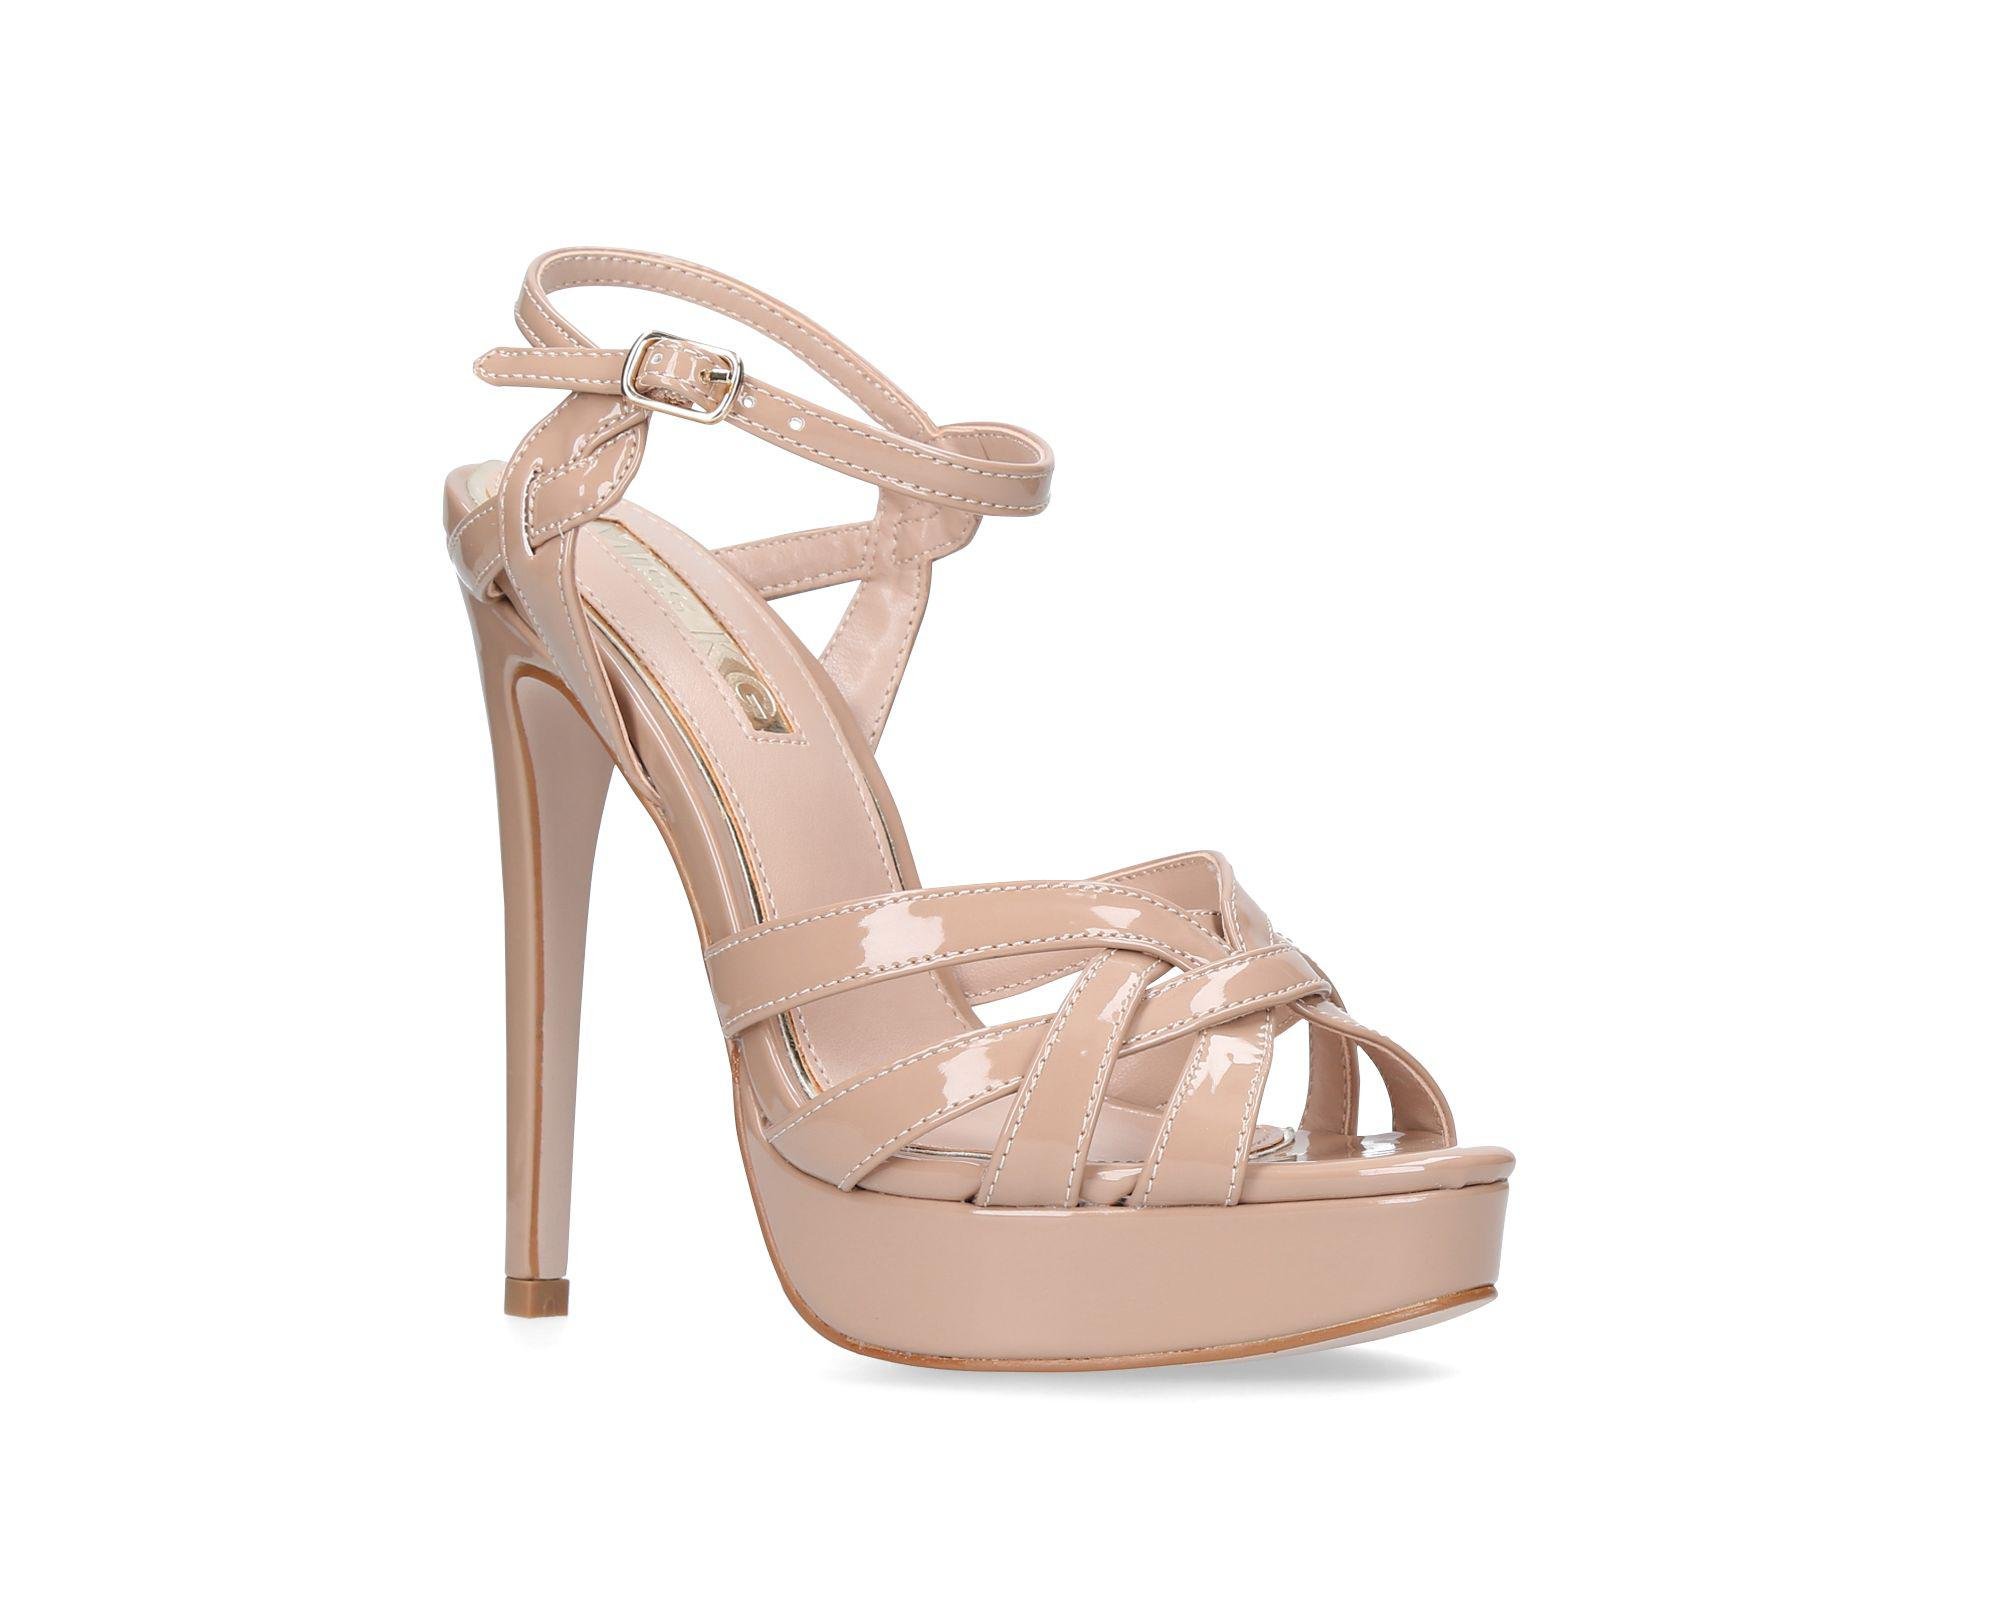 aa7c69701564 Miss Kg Nude  samia  High Heel Sandals in Natural - Lyst